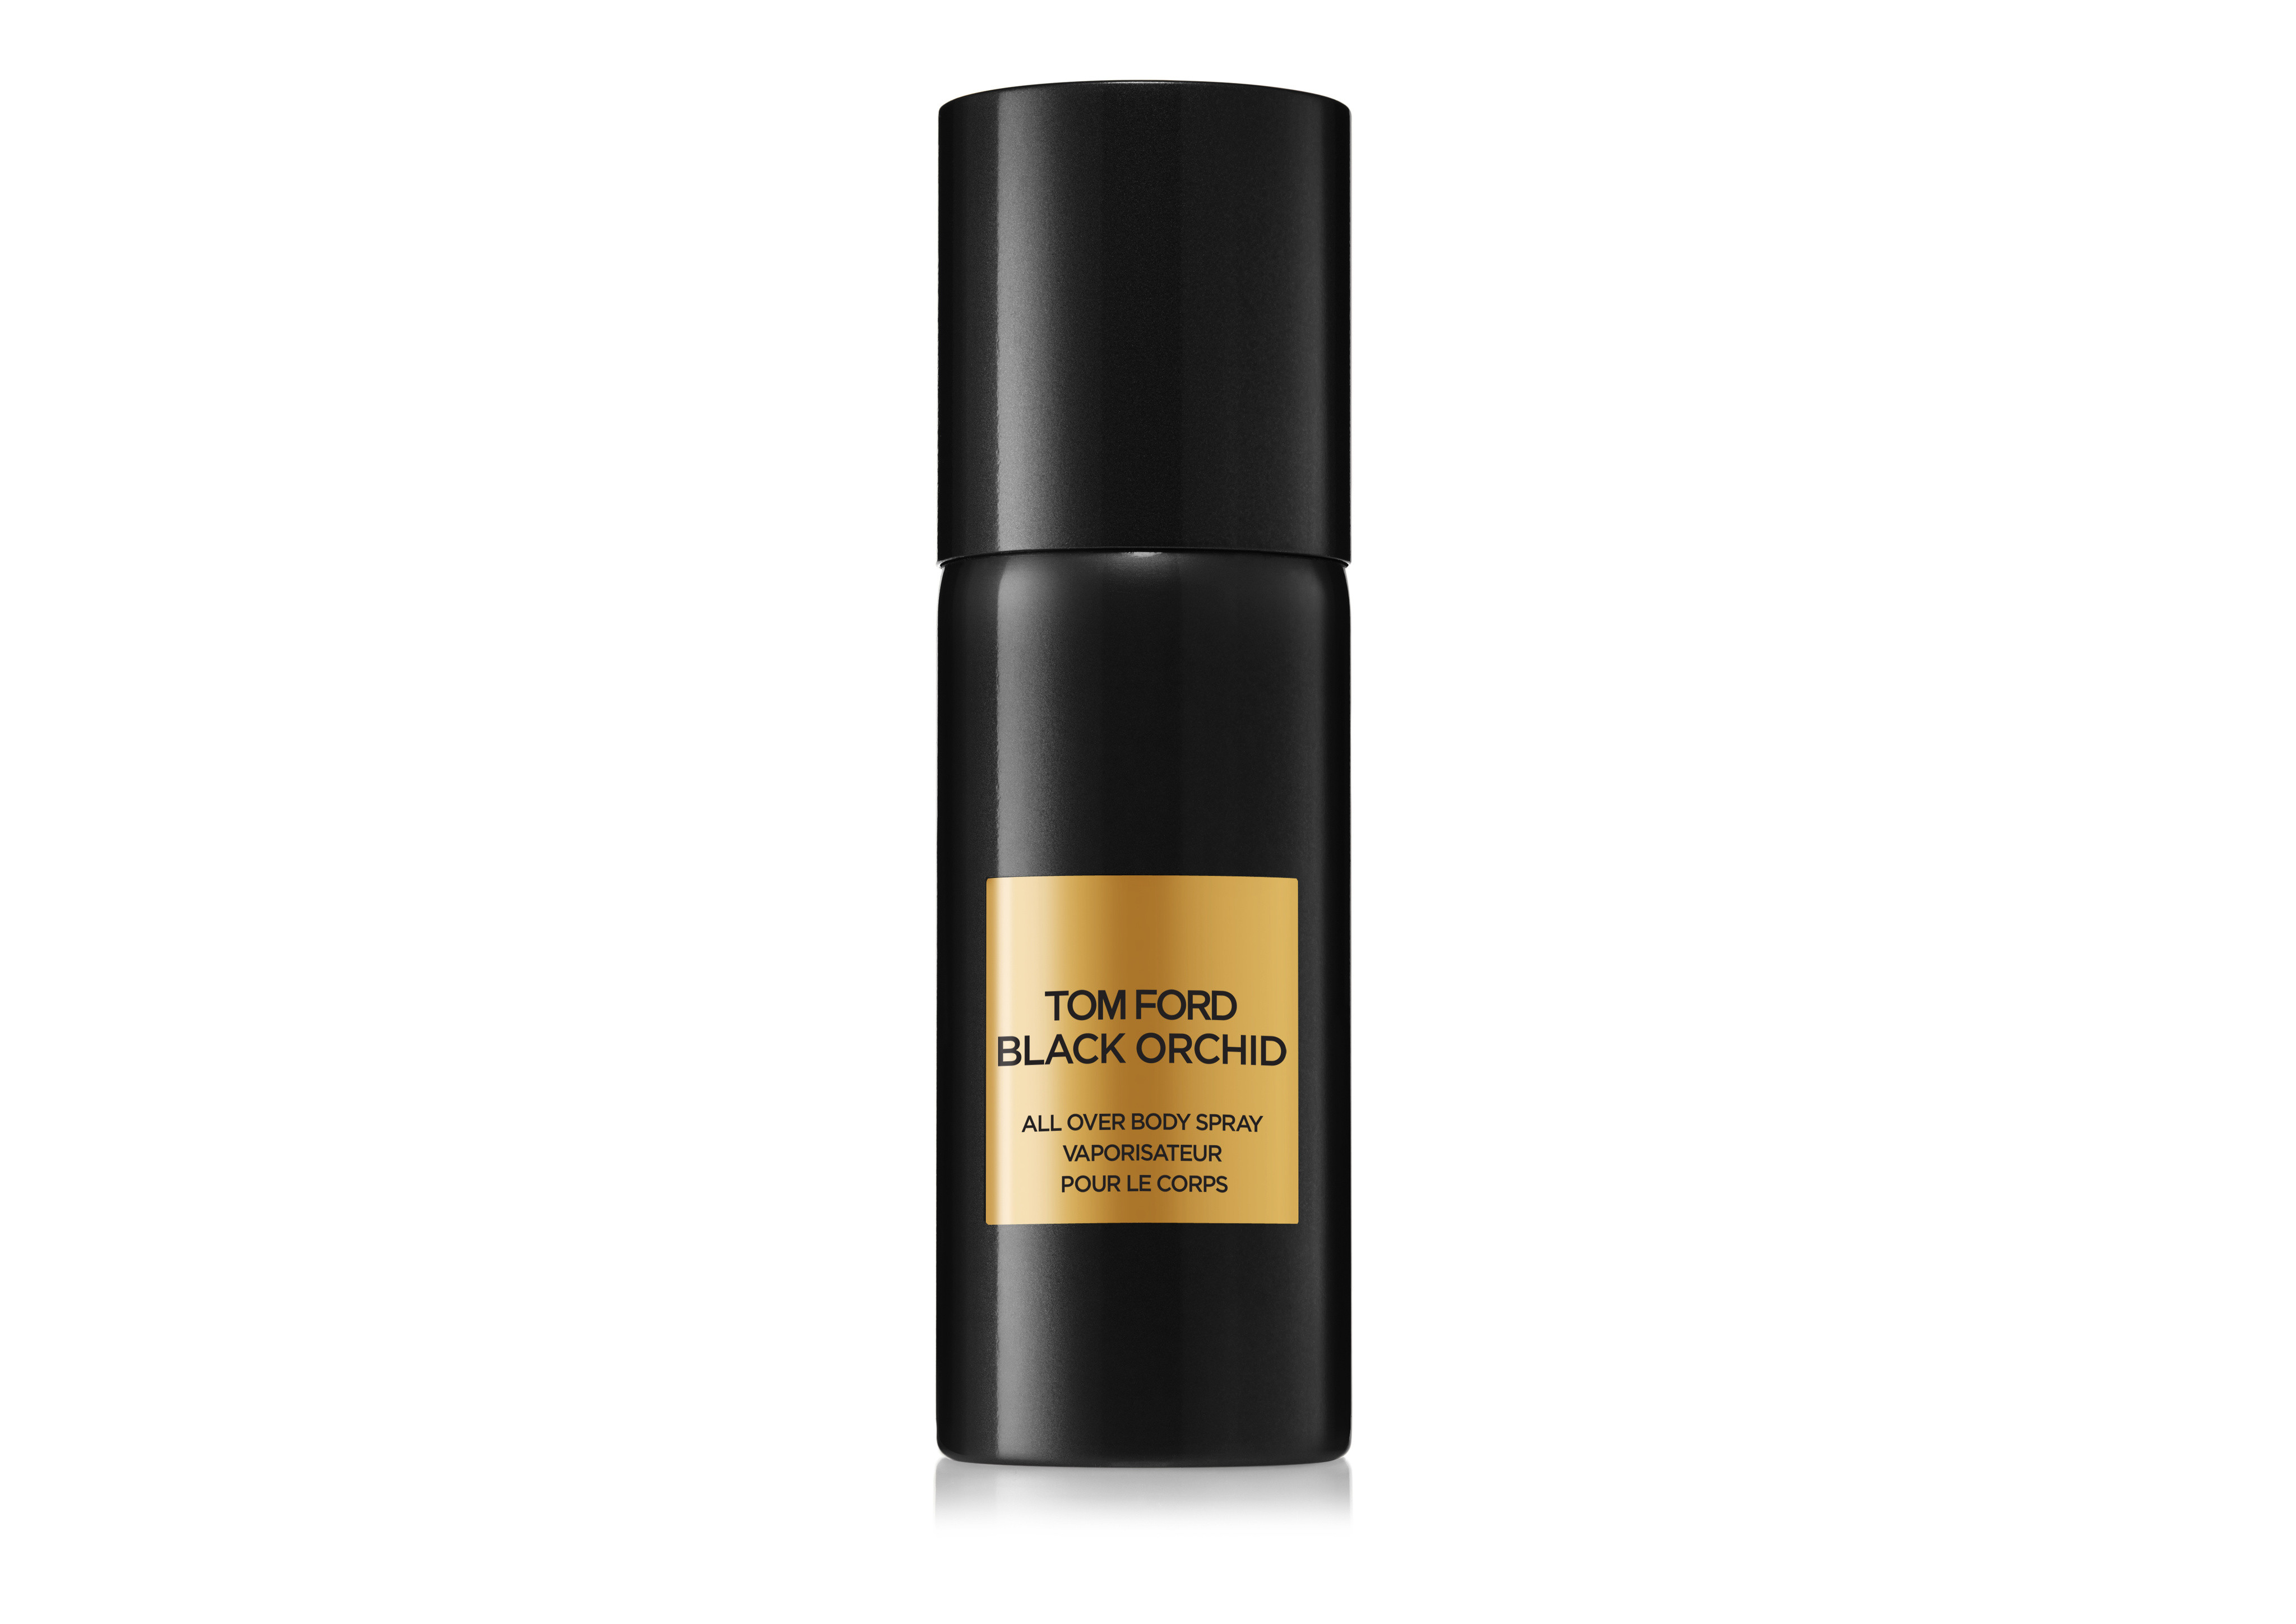 Tom Ford Black Orchid All Over Body Spray, Nero, large image number 0